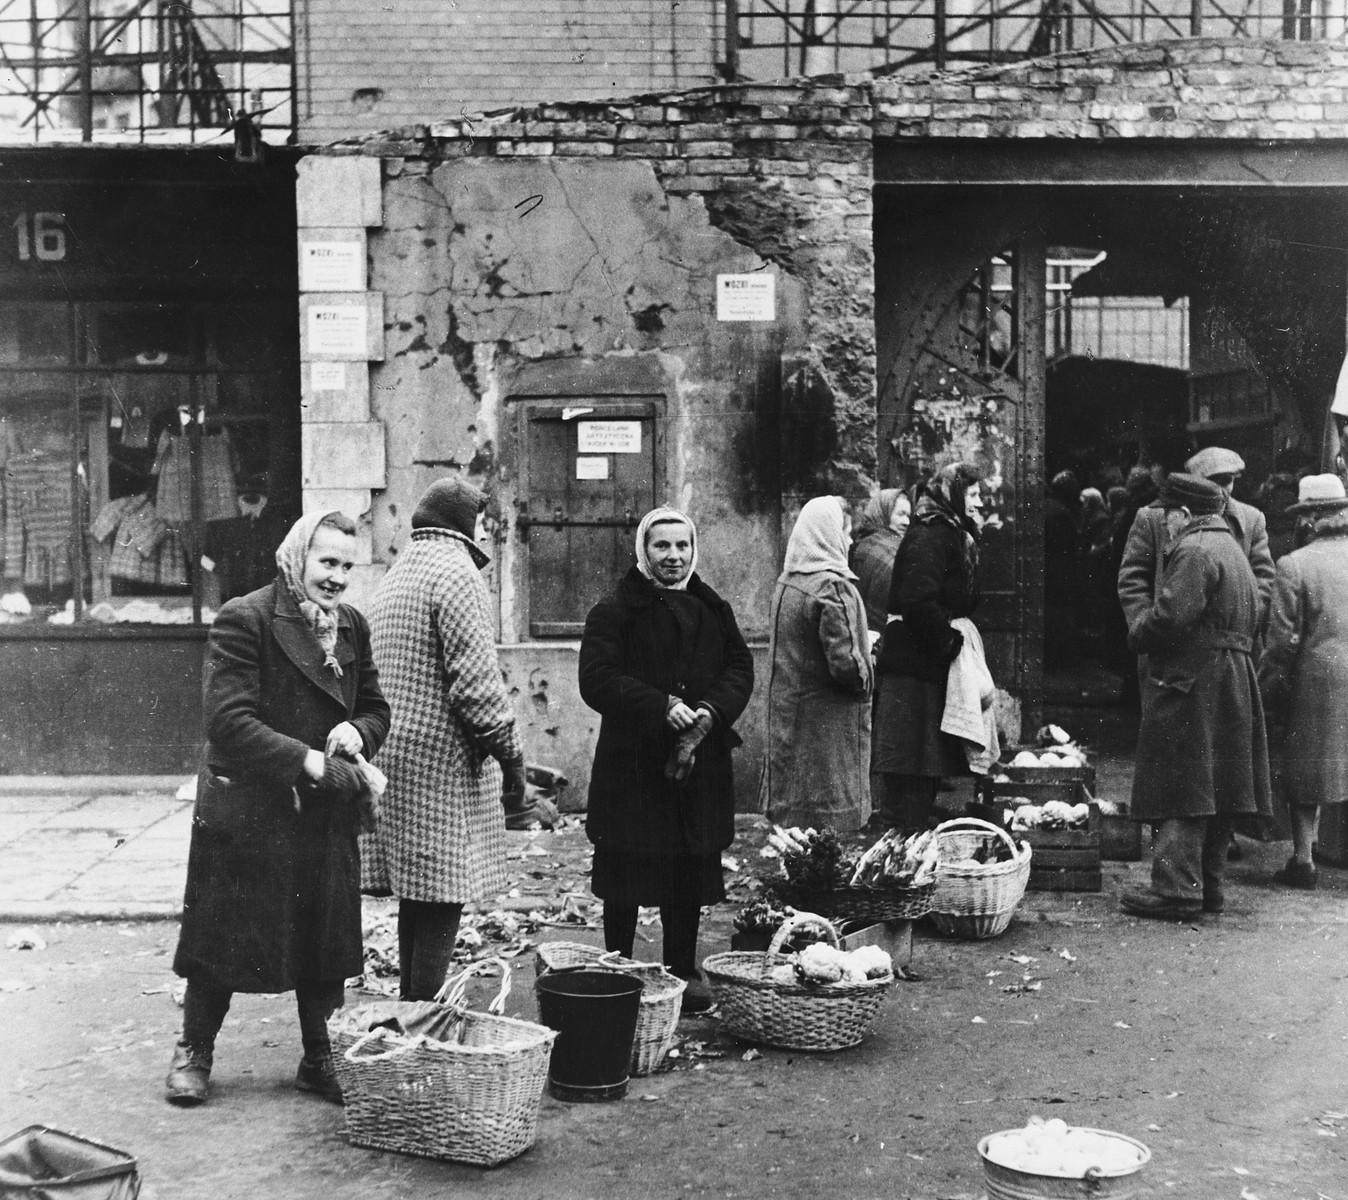 Polish women wait in line for bread in postwar Warsaw.